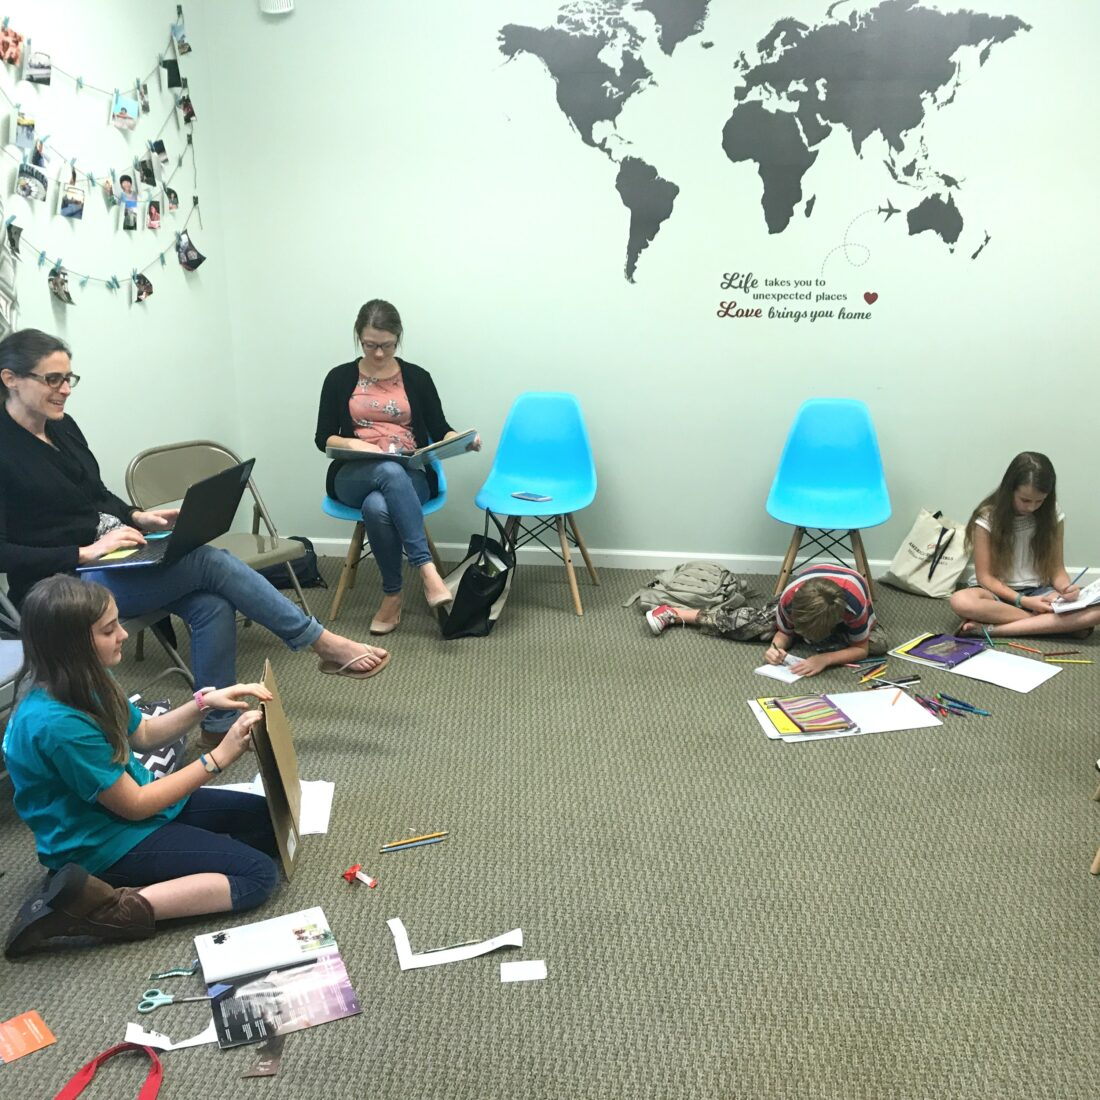 There are always two adults per room, even in study hall at Learn Together Lowcountry homeschool co-op in Bluffton SC